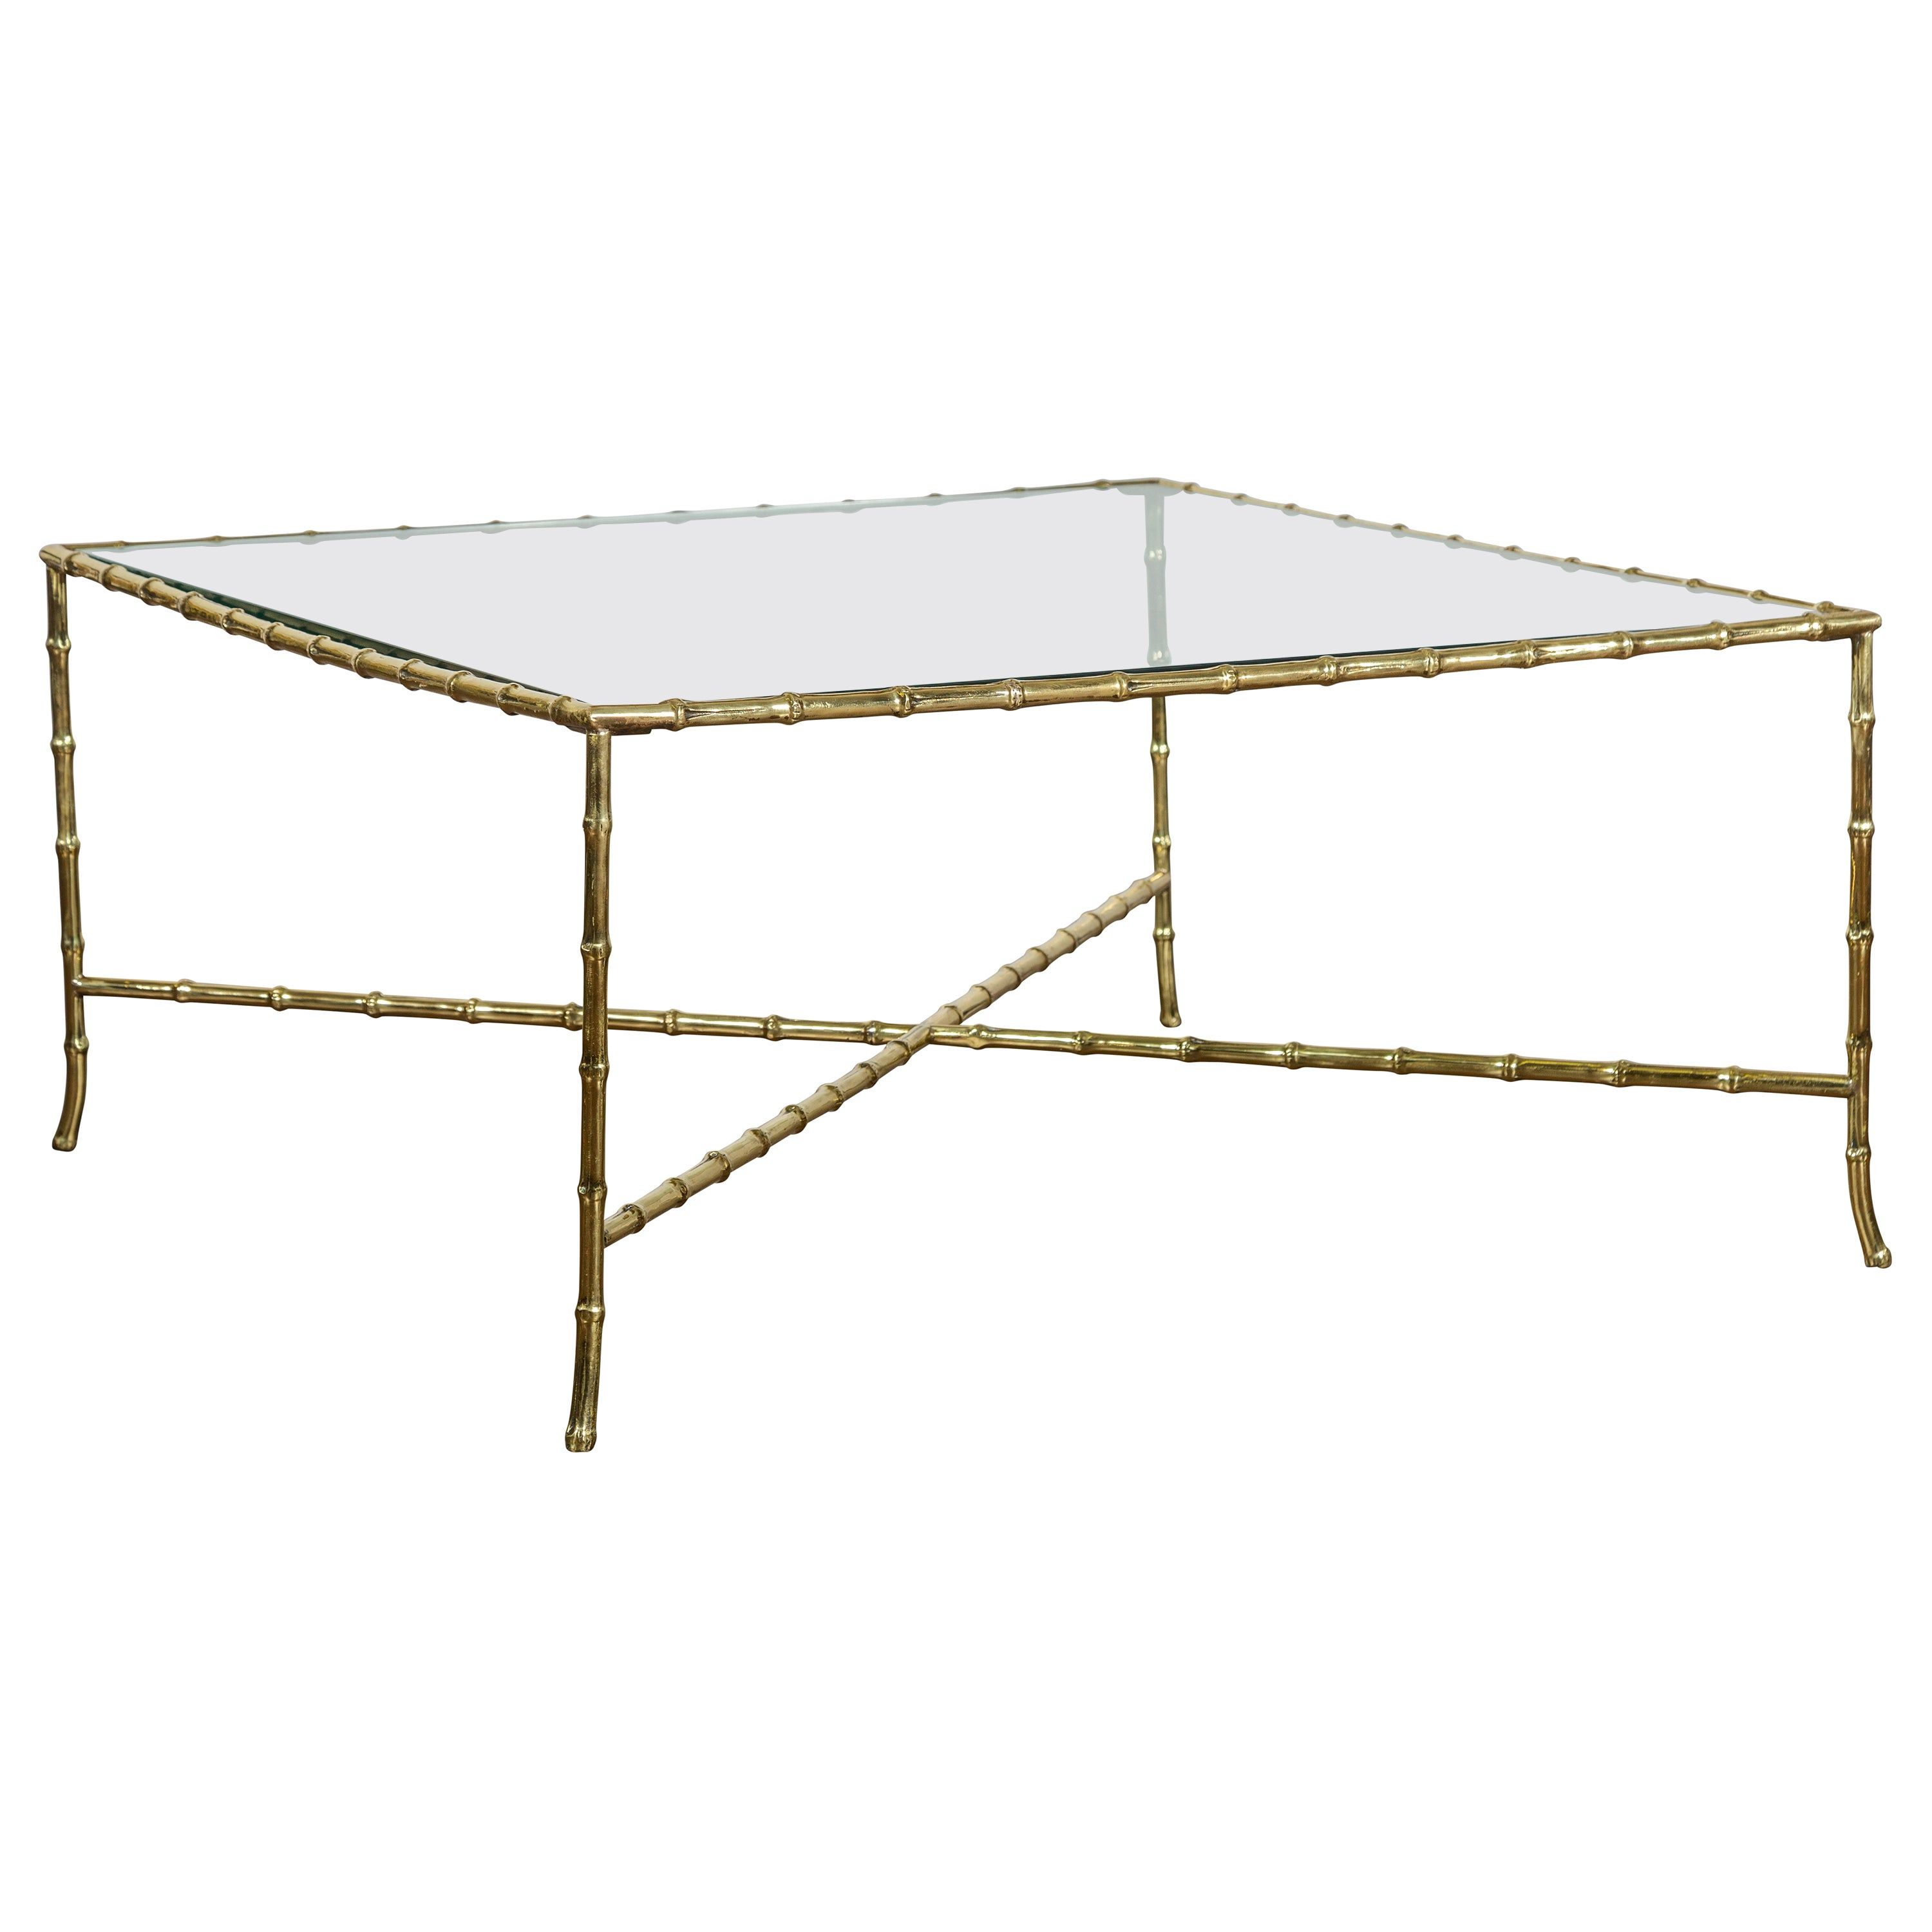 Italian Midcentury Brass Faux Bamboo Coffee Table with Glass Top and Stretcher